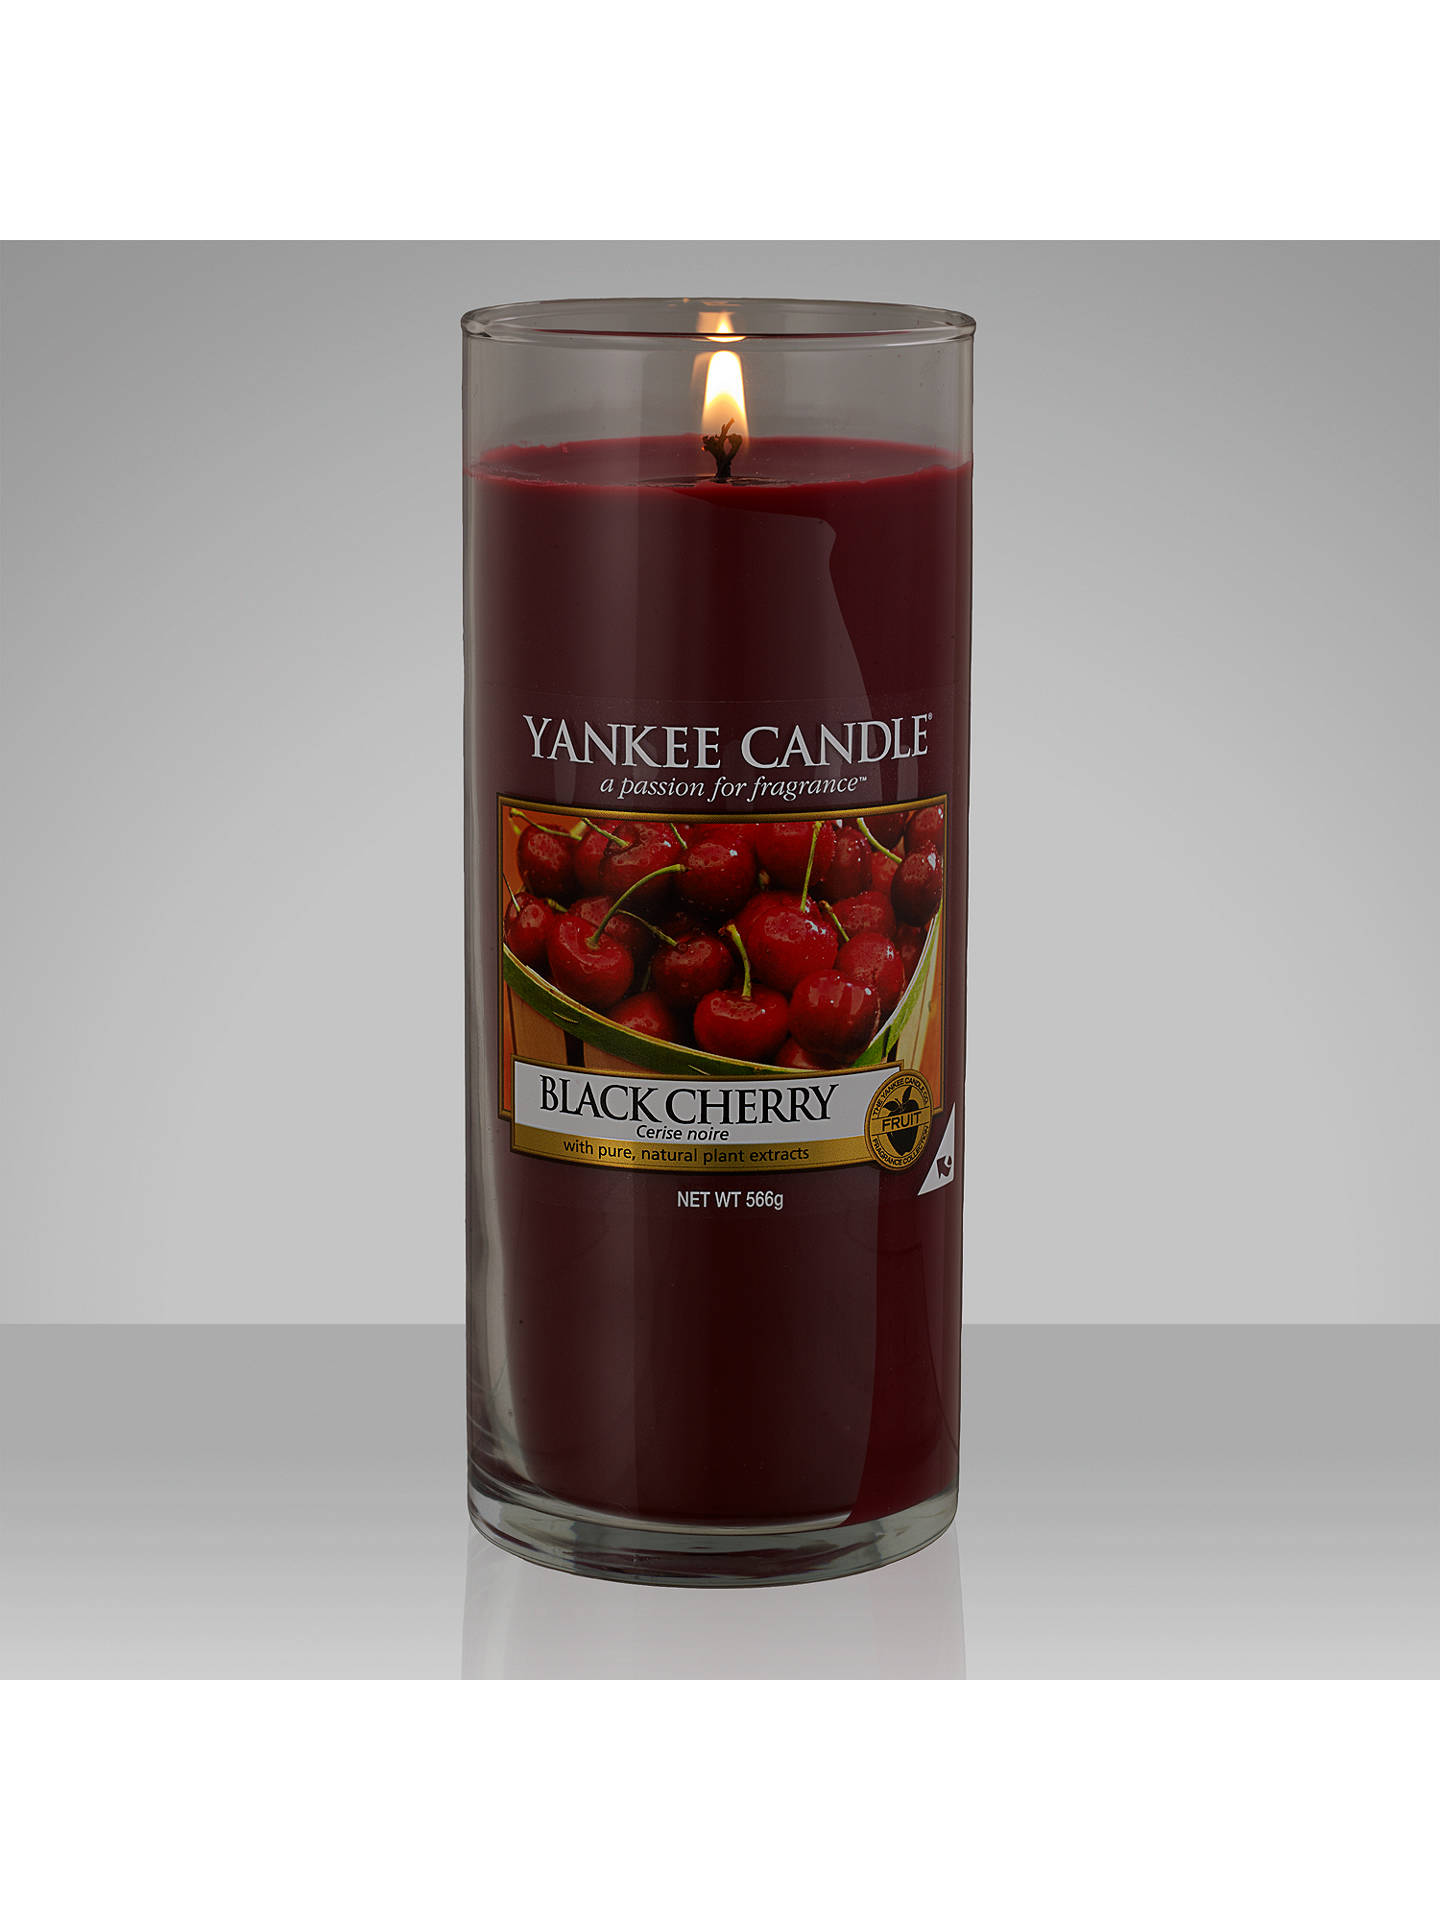 Yankee Candle Black Cherry Scented Large At John